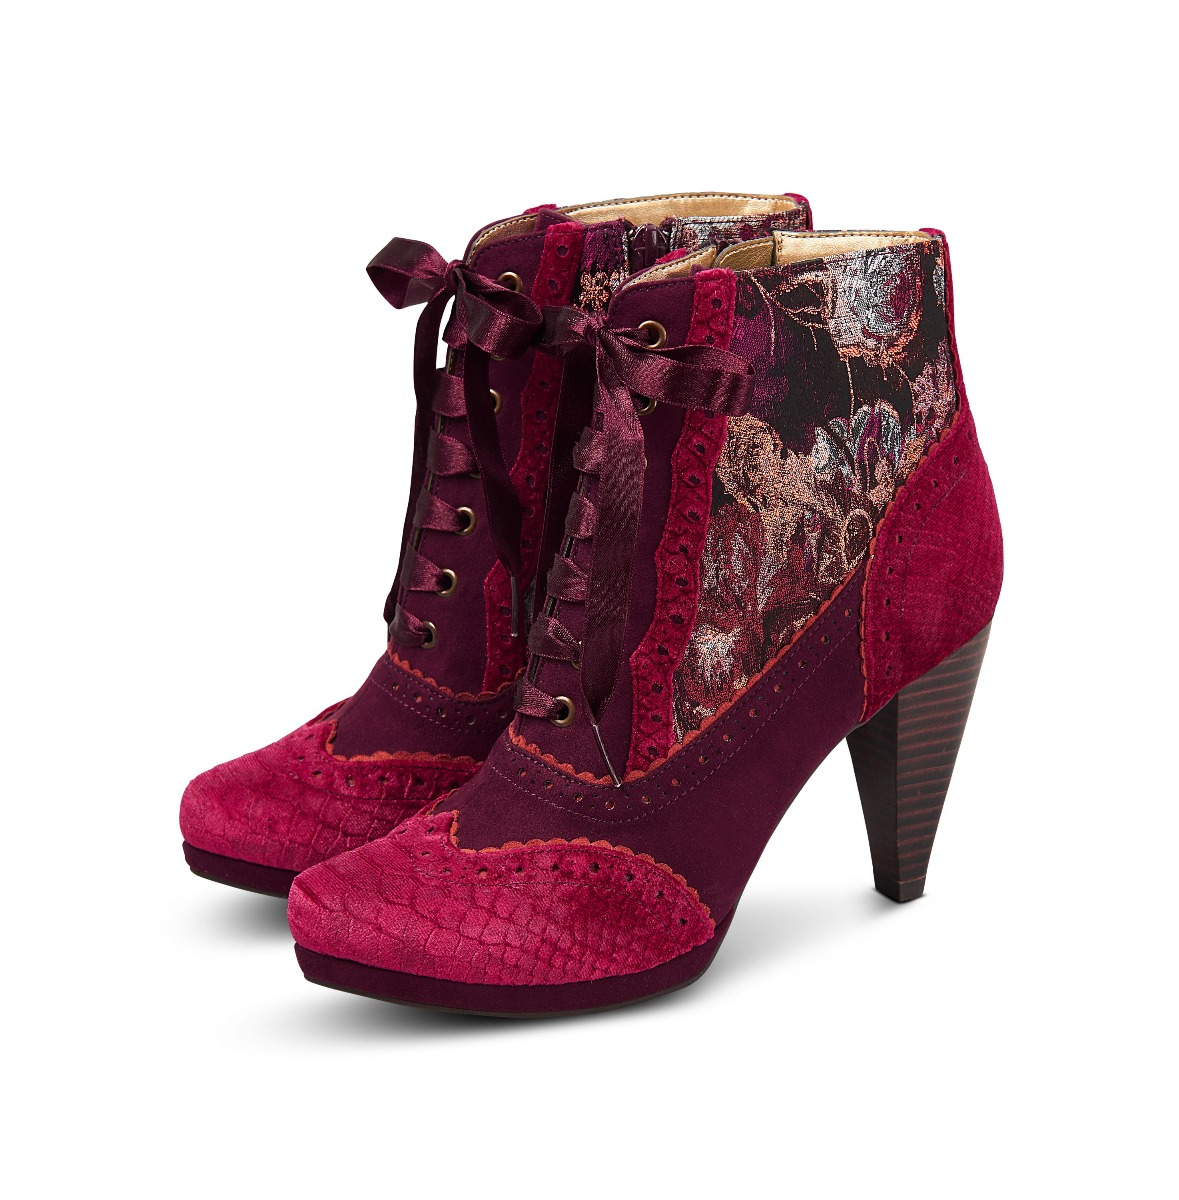 rs09233bb_chaussures-bottines-pin-up-retro-50-s-glam-chic-peri-bordeaux